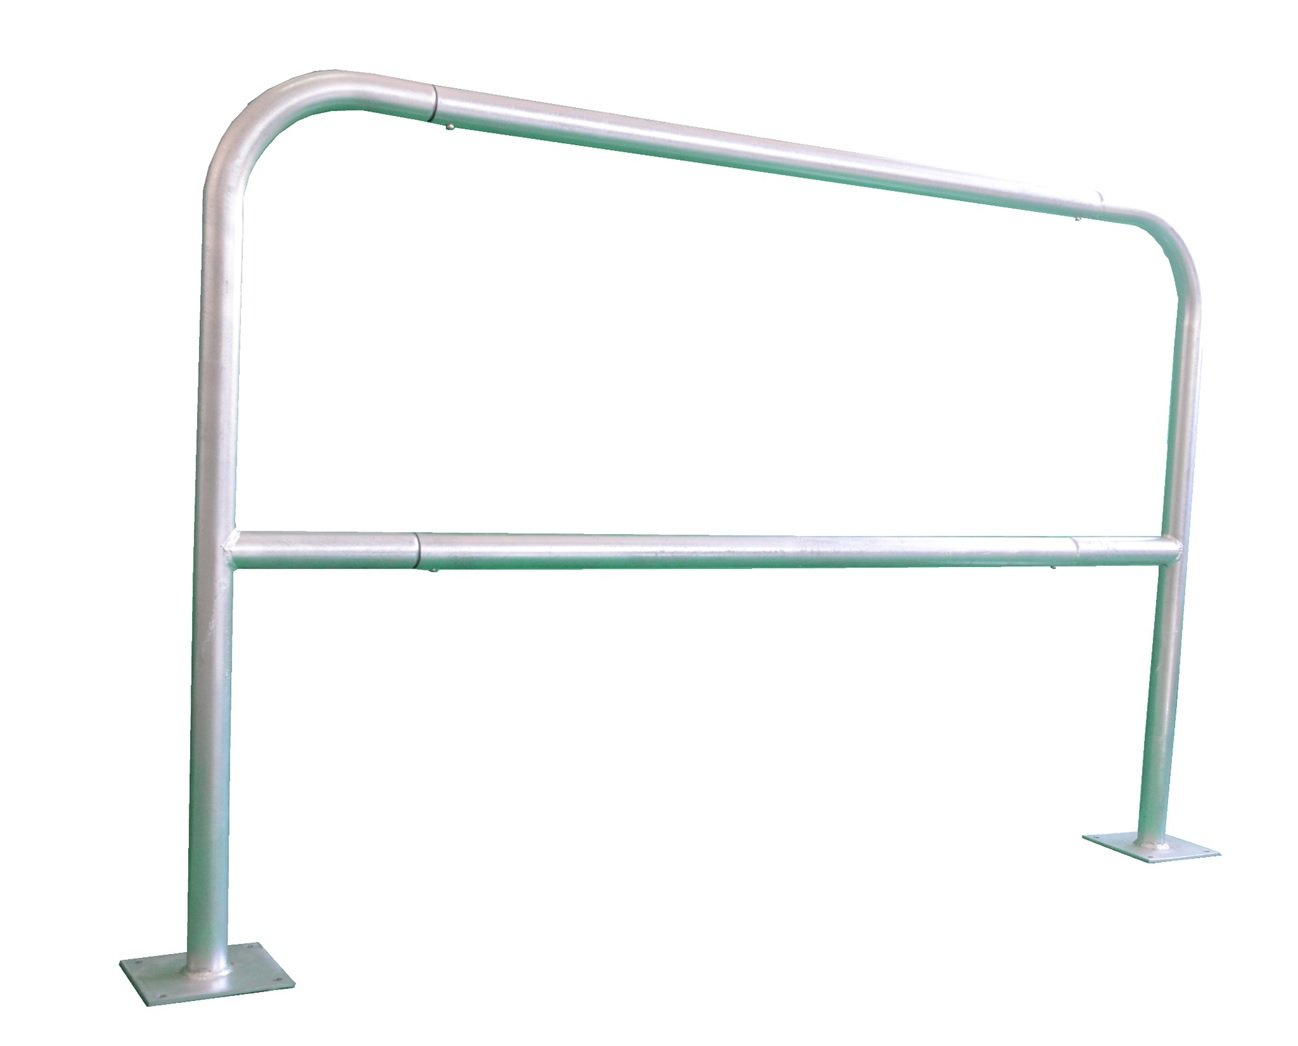 for bolting in place length: 1,5 m Pro/²Tect Safety Rail SHB-15-B-S silver Bike Railing Traffic Protection Steel Barrier with knee rail Guidance